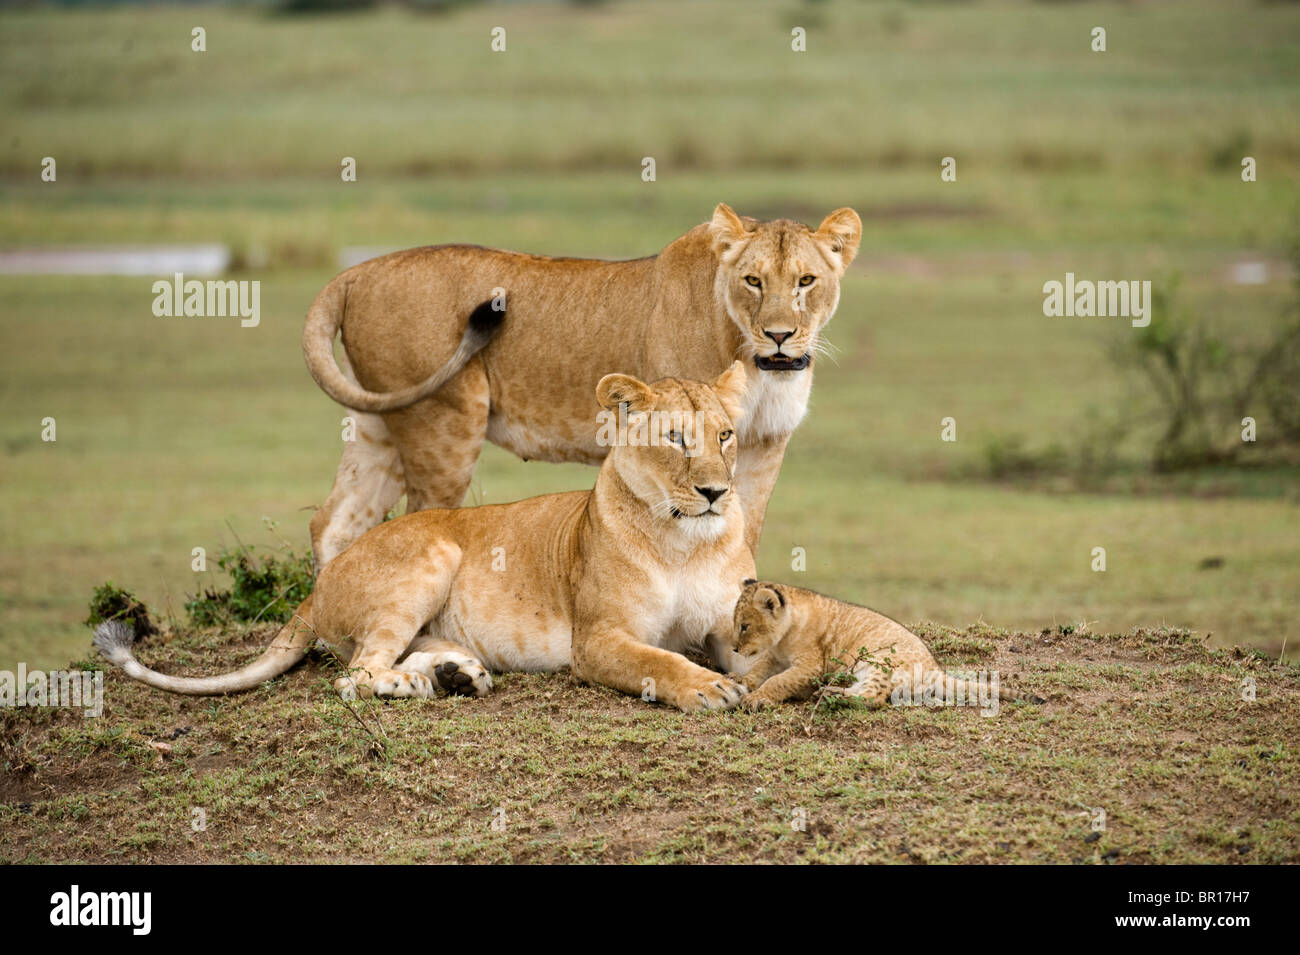 Lions with cub (Panthero leo), Serengeti National Park, Tanzania - Stock Image